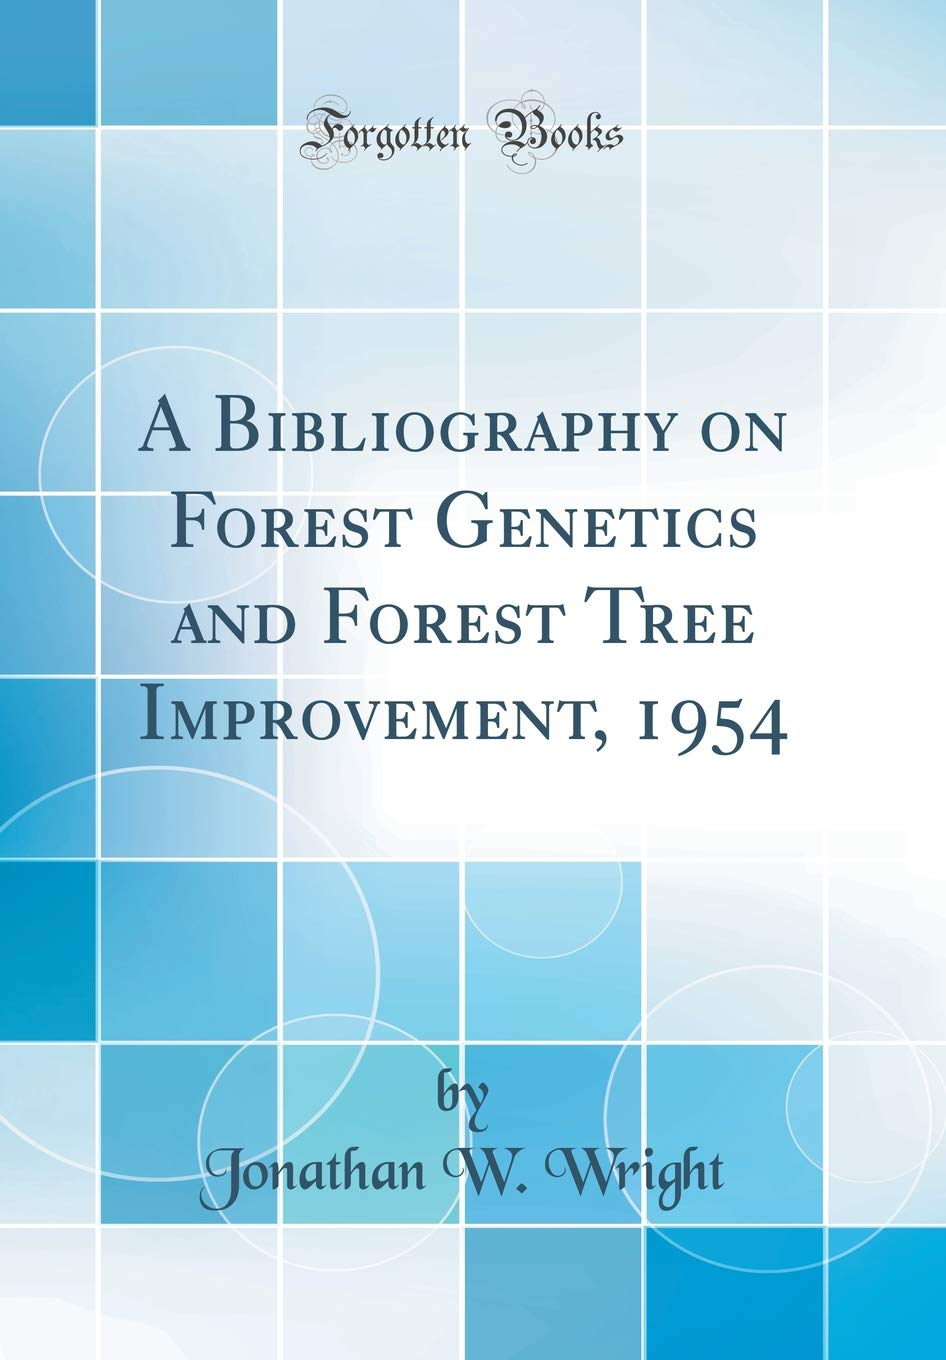 A Bibliography on Forest Genetics and Forest Tree